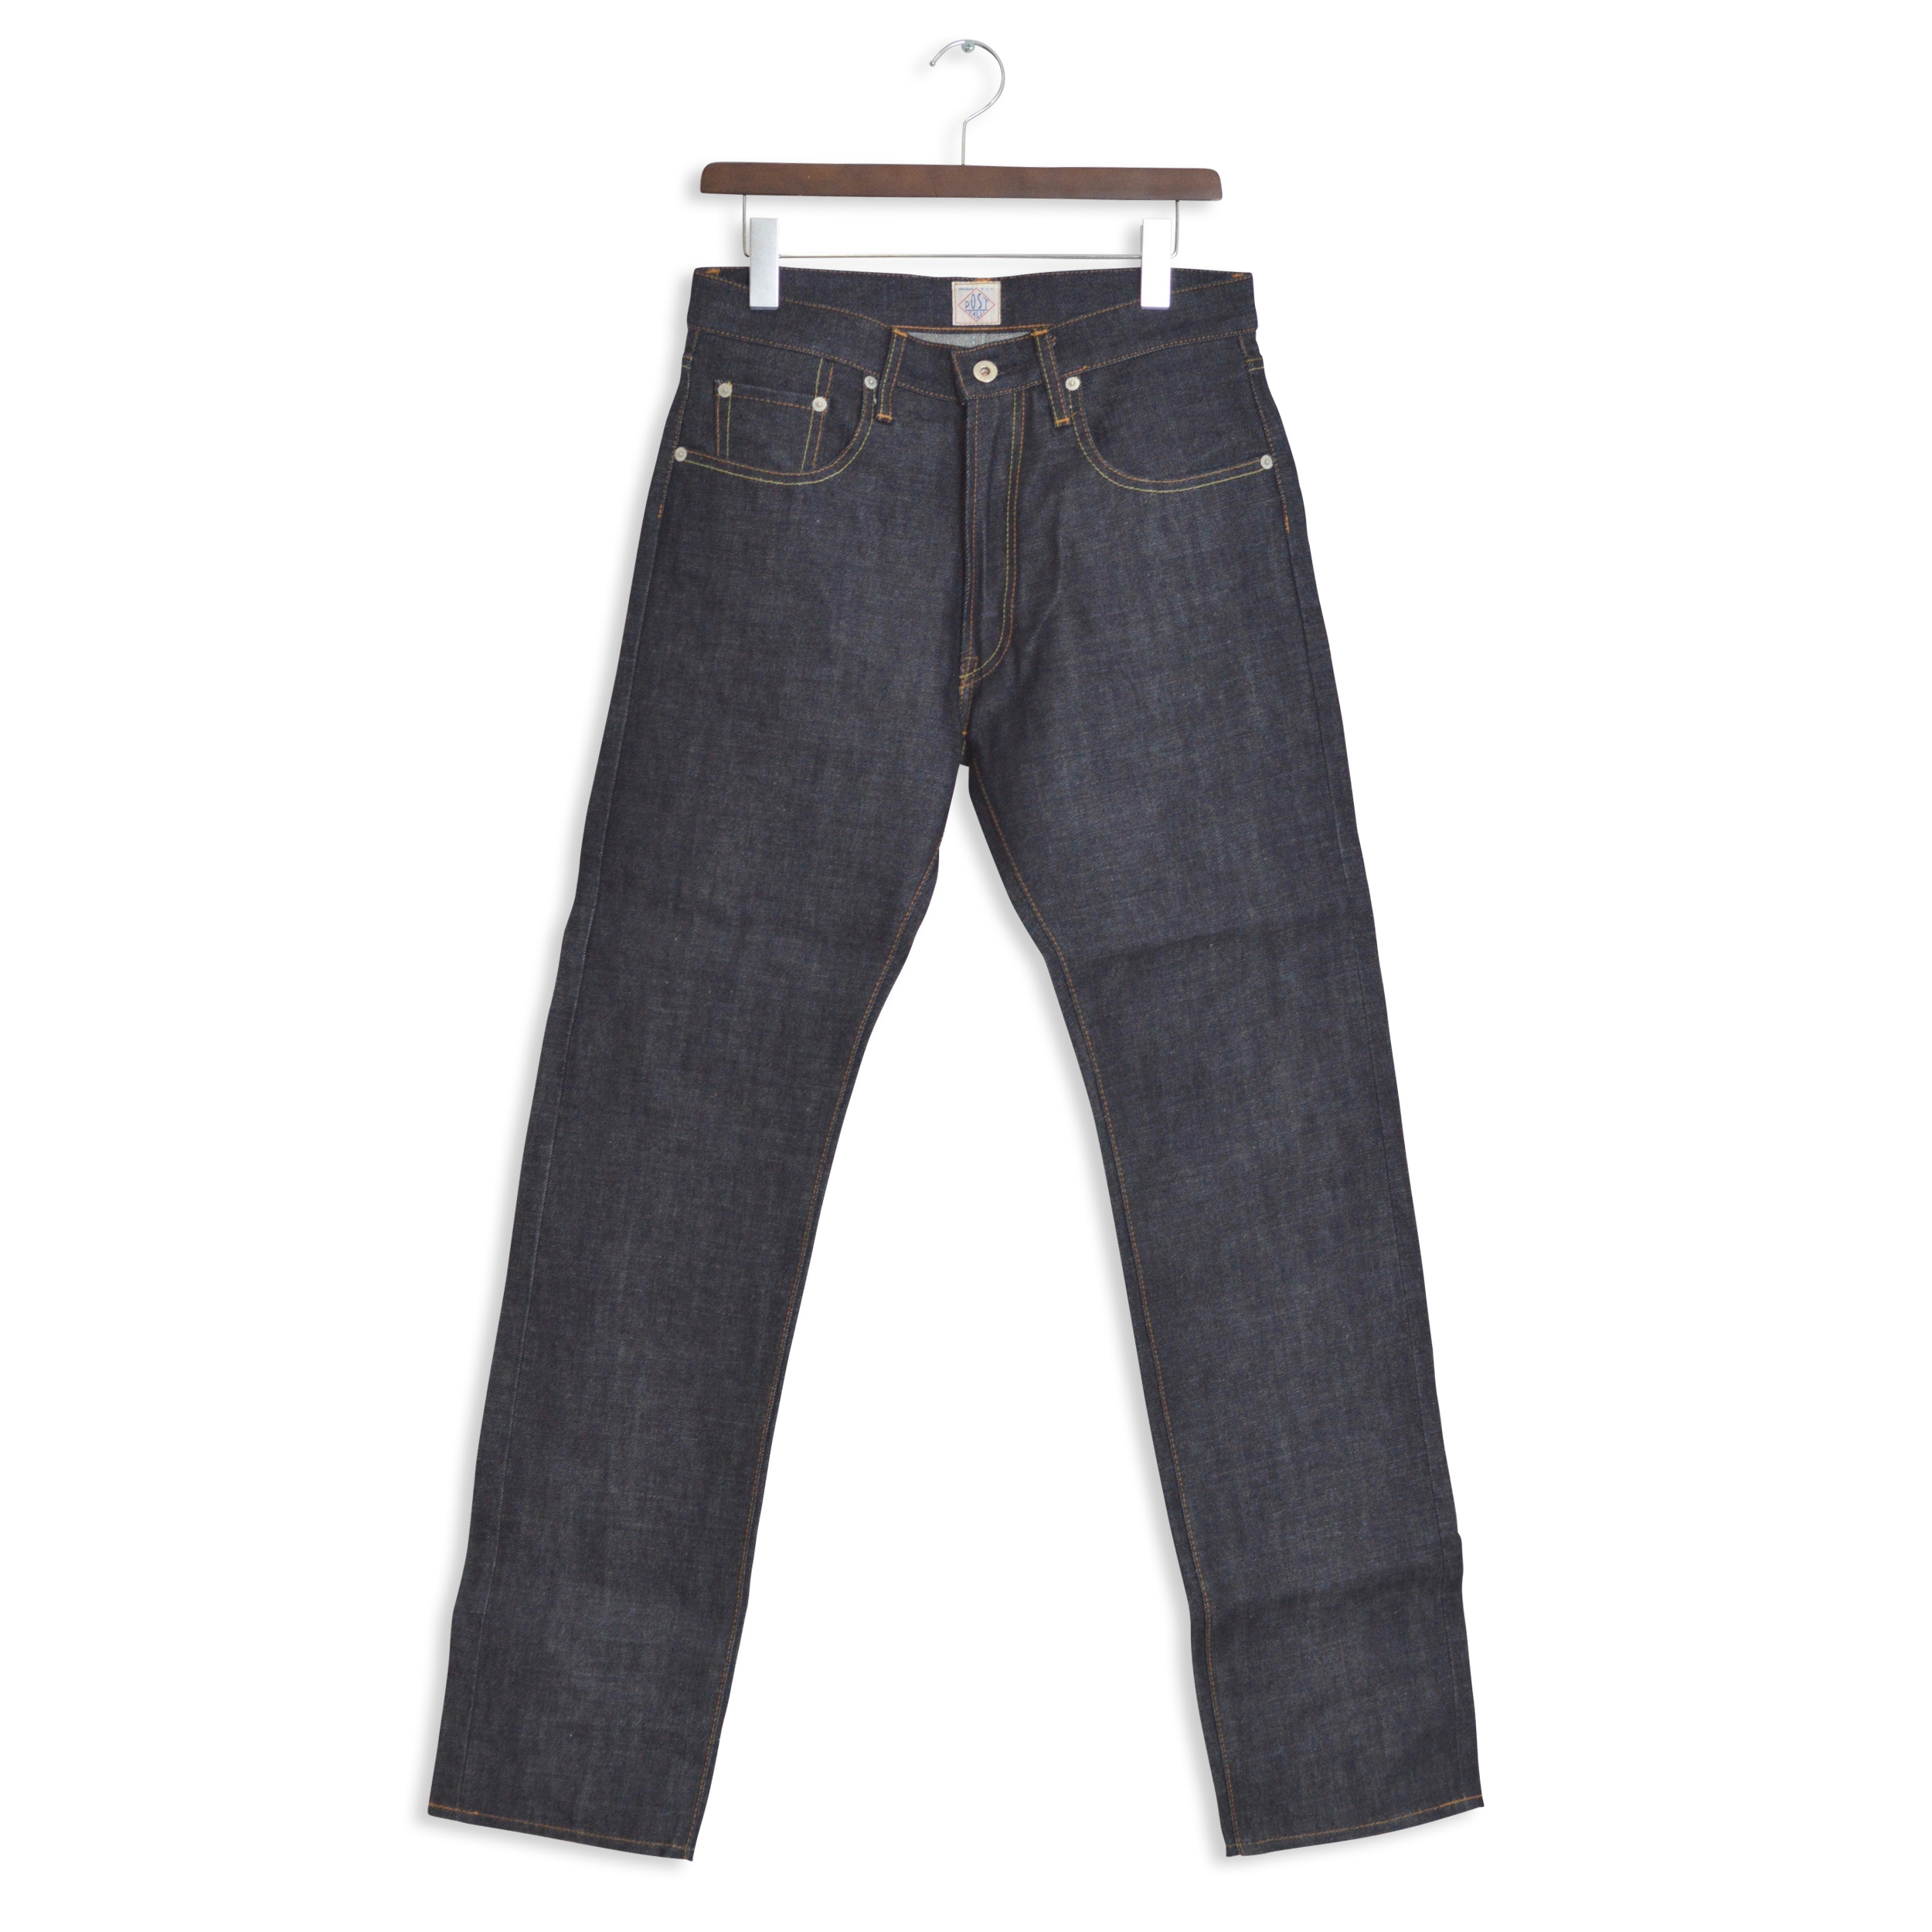 【35%OFF商品】POST OVERALLS(ポストオーバーオールズ)/1398 #4 FIVE POCKET/JAPANESE 14OZ DENIM W/JEAN STICH(1703)